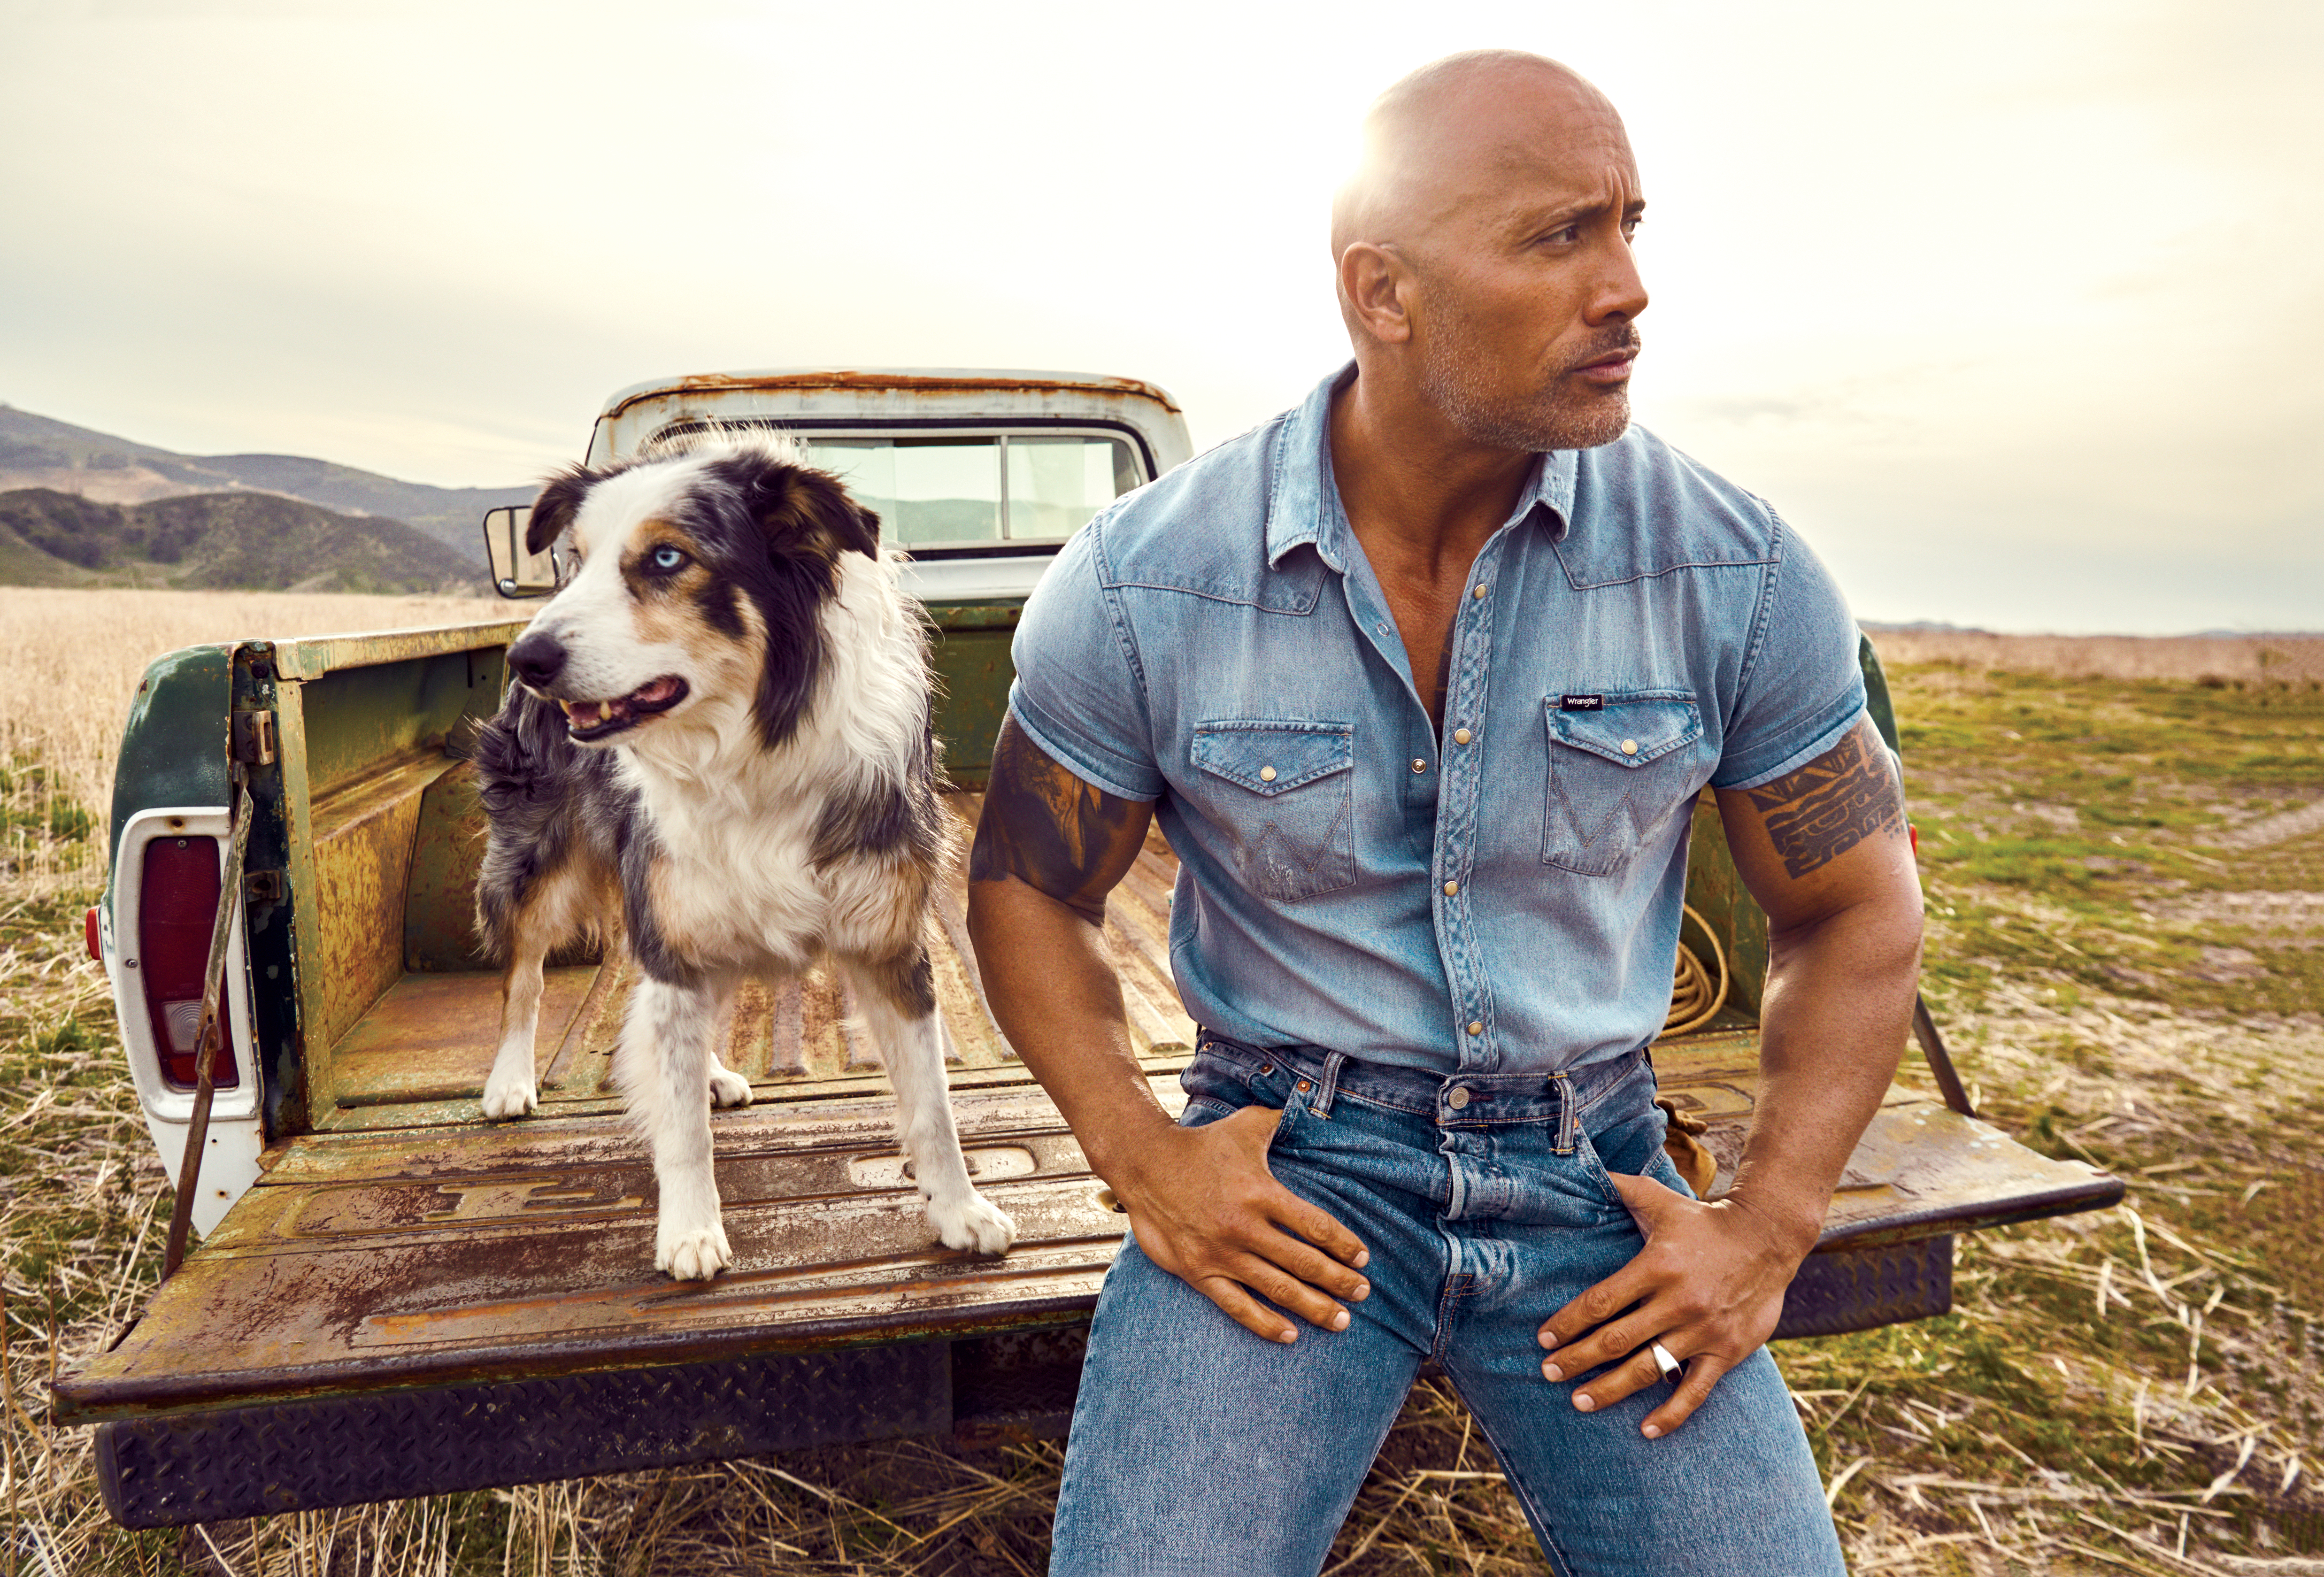 dwayne johnson  the pain and the passion that fuel the